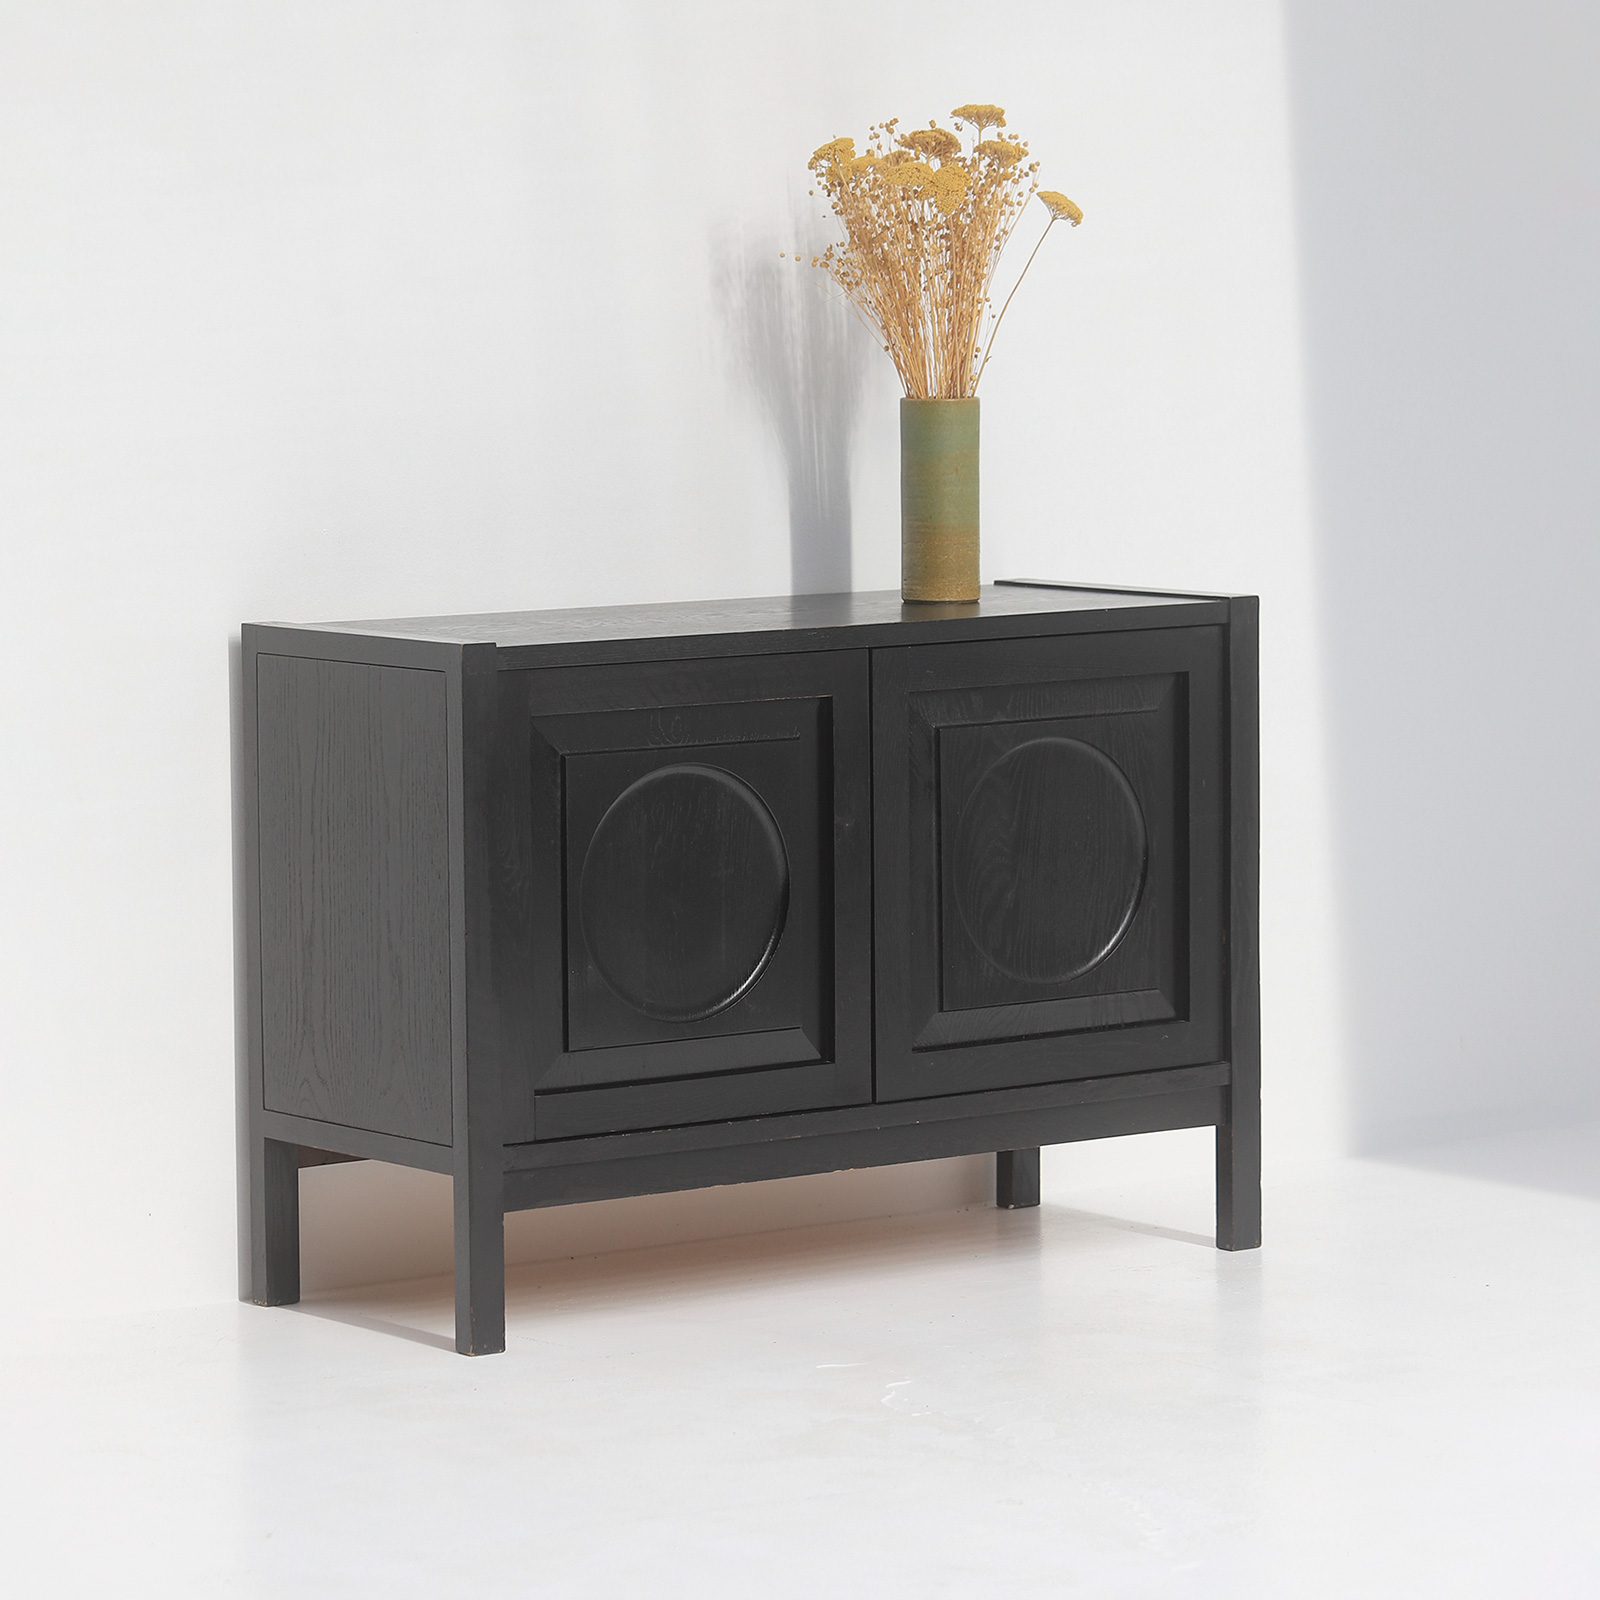 Defour Sideboard / Cabinet 1970s